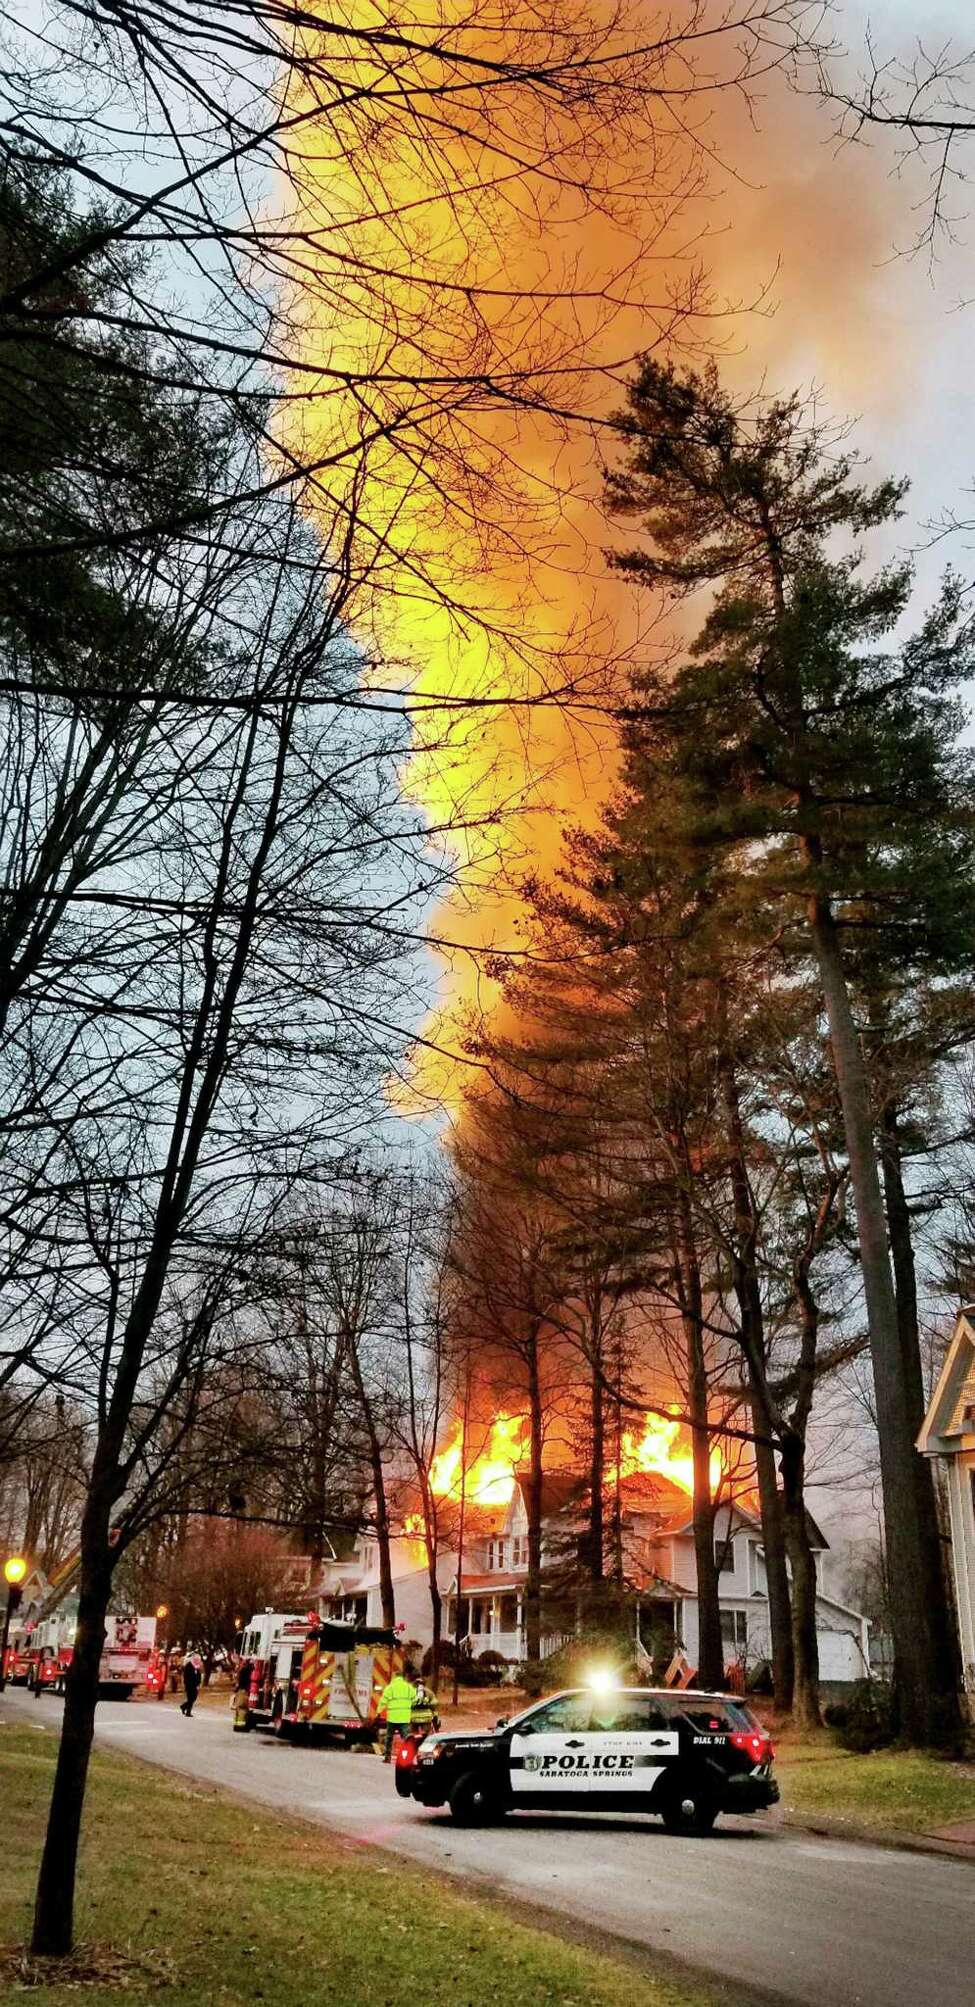 A column of fire rises from 23-27 Sarazen Way Wednesday Dec. 24, 2018 in Saratoga Springs, N.Y. (Special to the Times Union by Janine Rome)